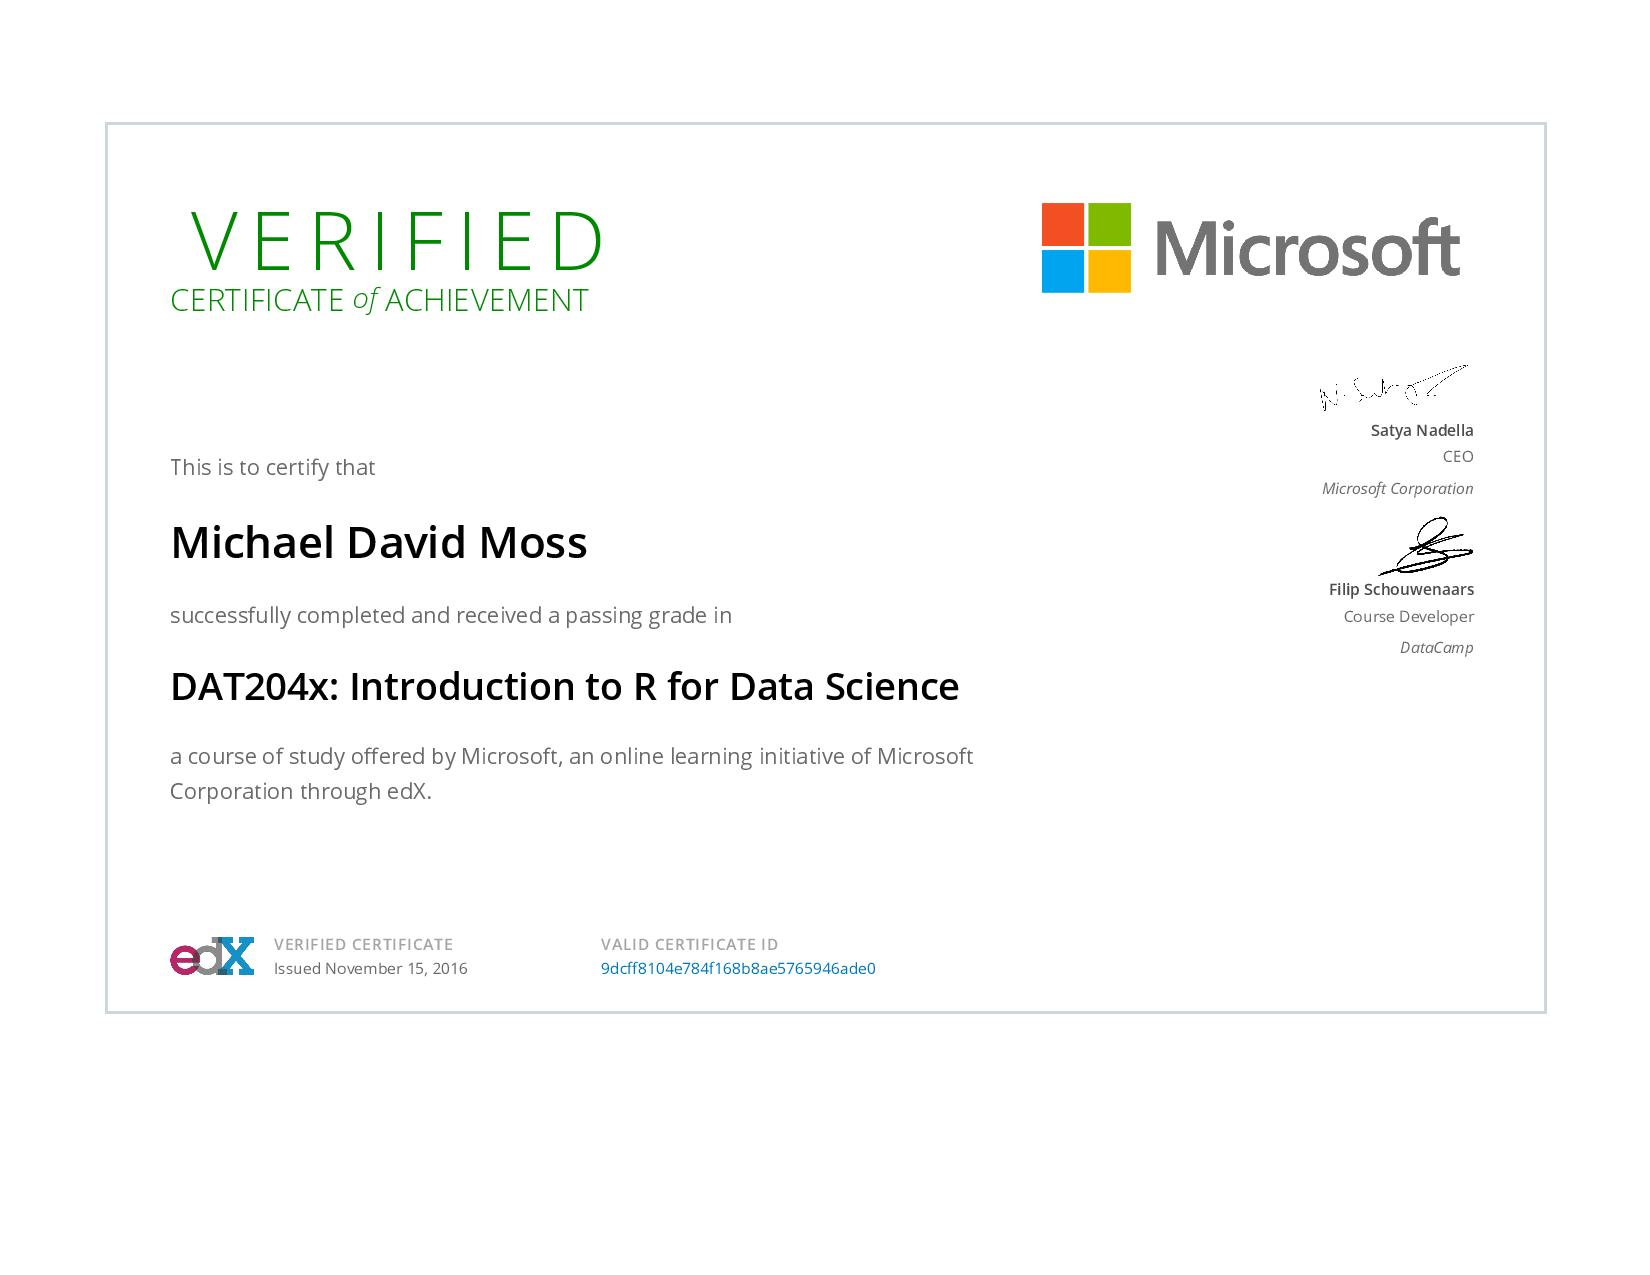 Introduction to R for Data Science Certificate